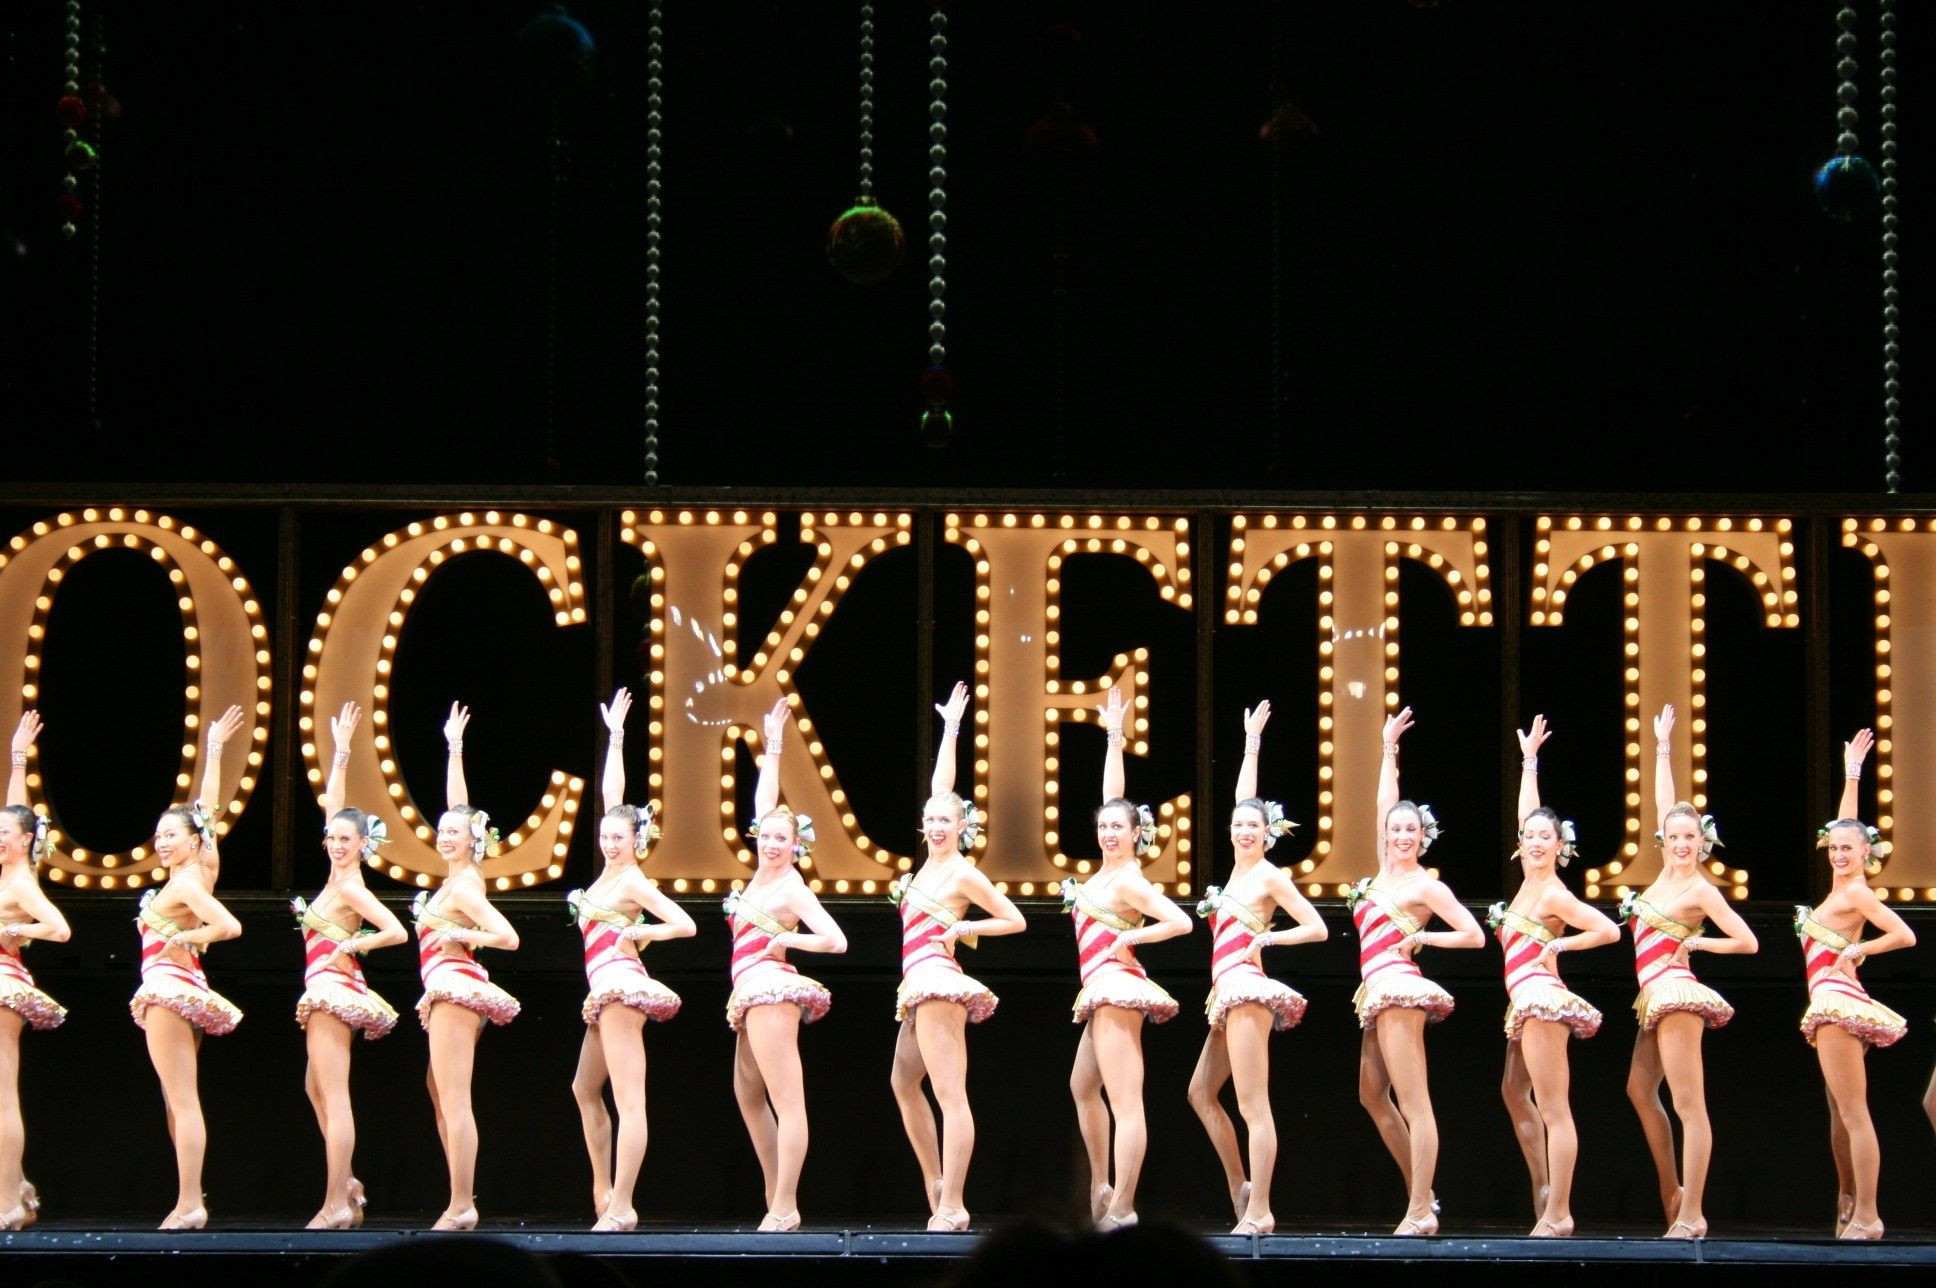 Rockettes Christmas Show.Rockettes Christmas Spectacular New York In 2019 New